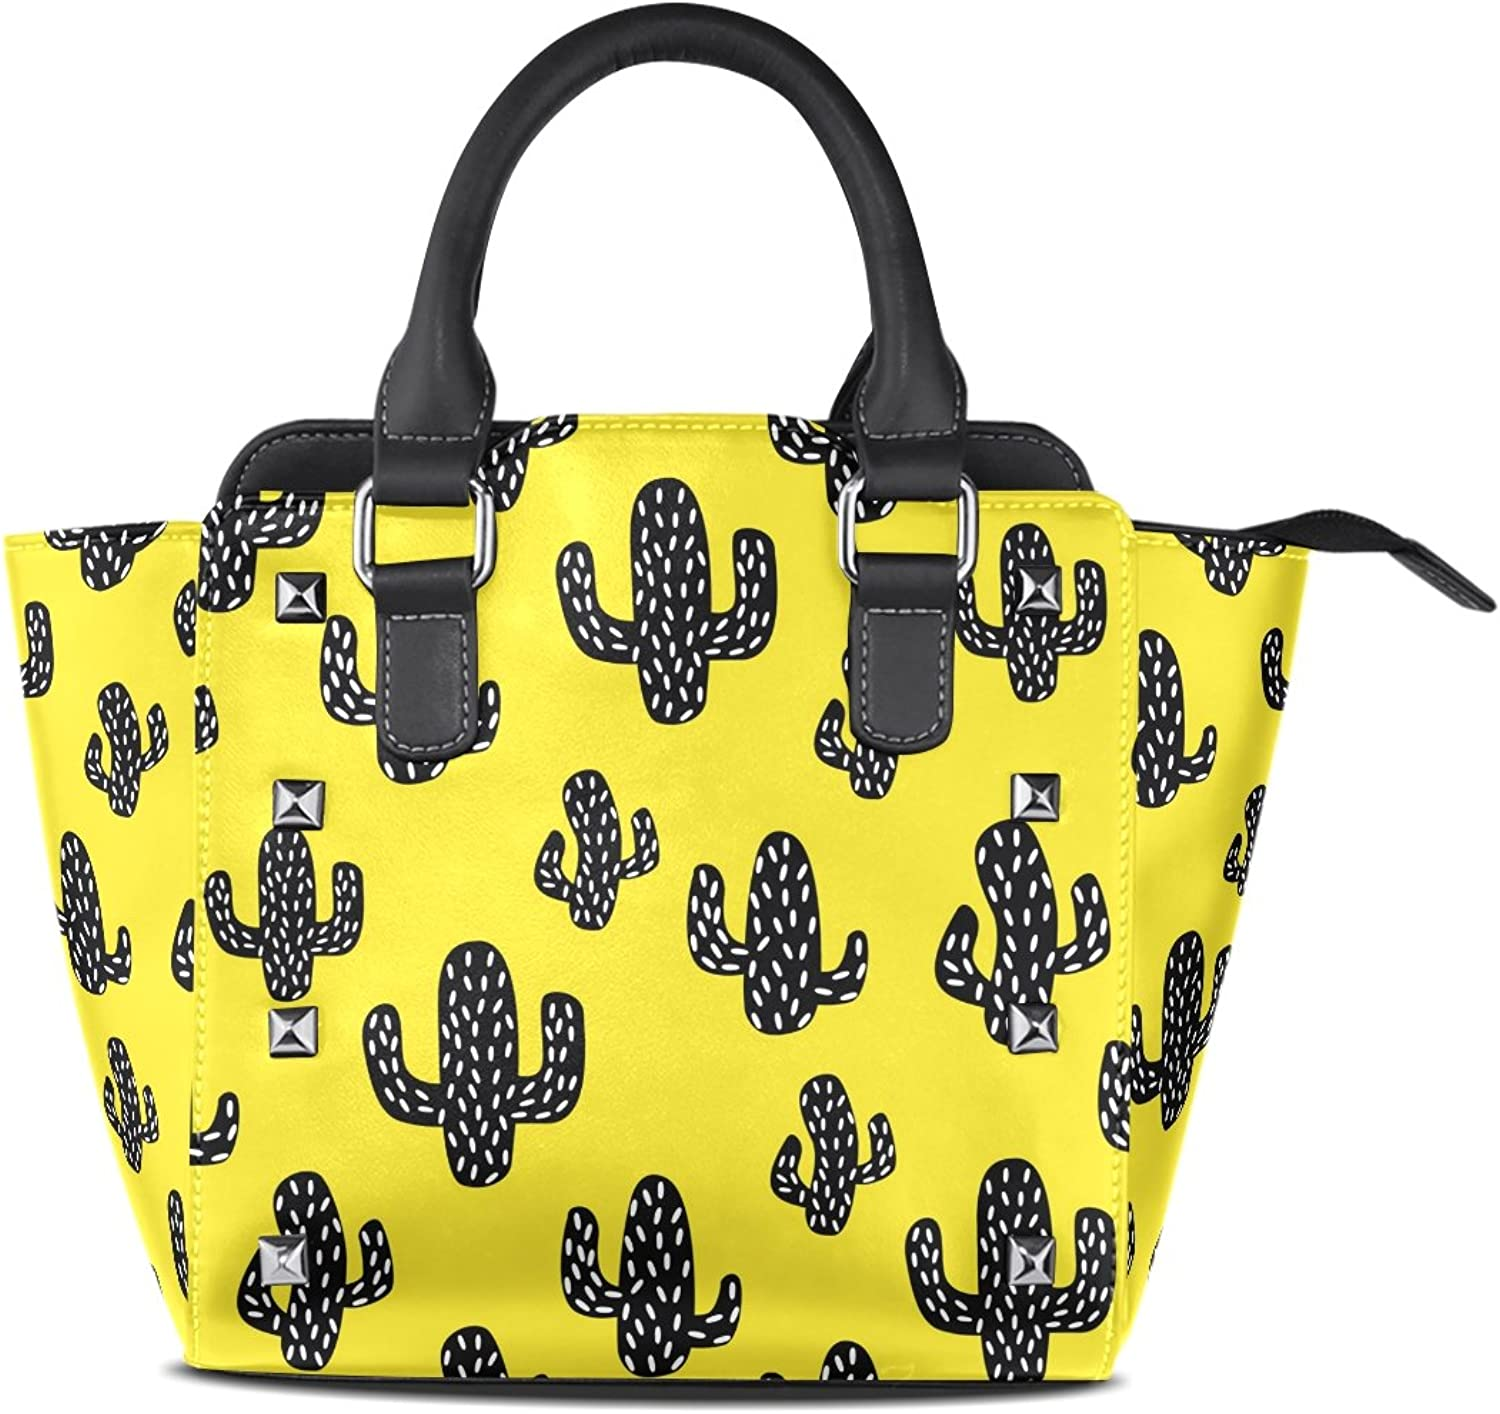 My Little Nest Women's Top Handle Satchel Handbag Black Cactus Yellow Ladies PU Leather Shoulder Bag Crossbody Bag